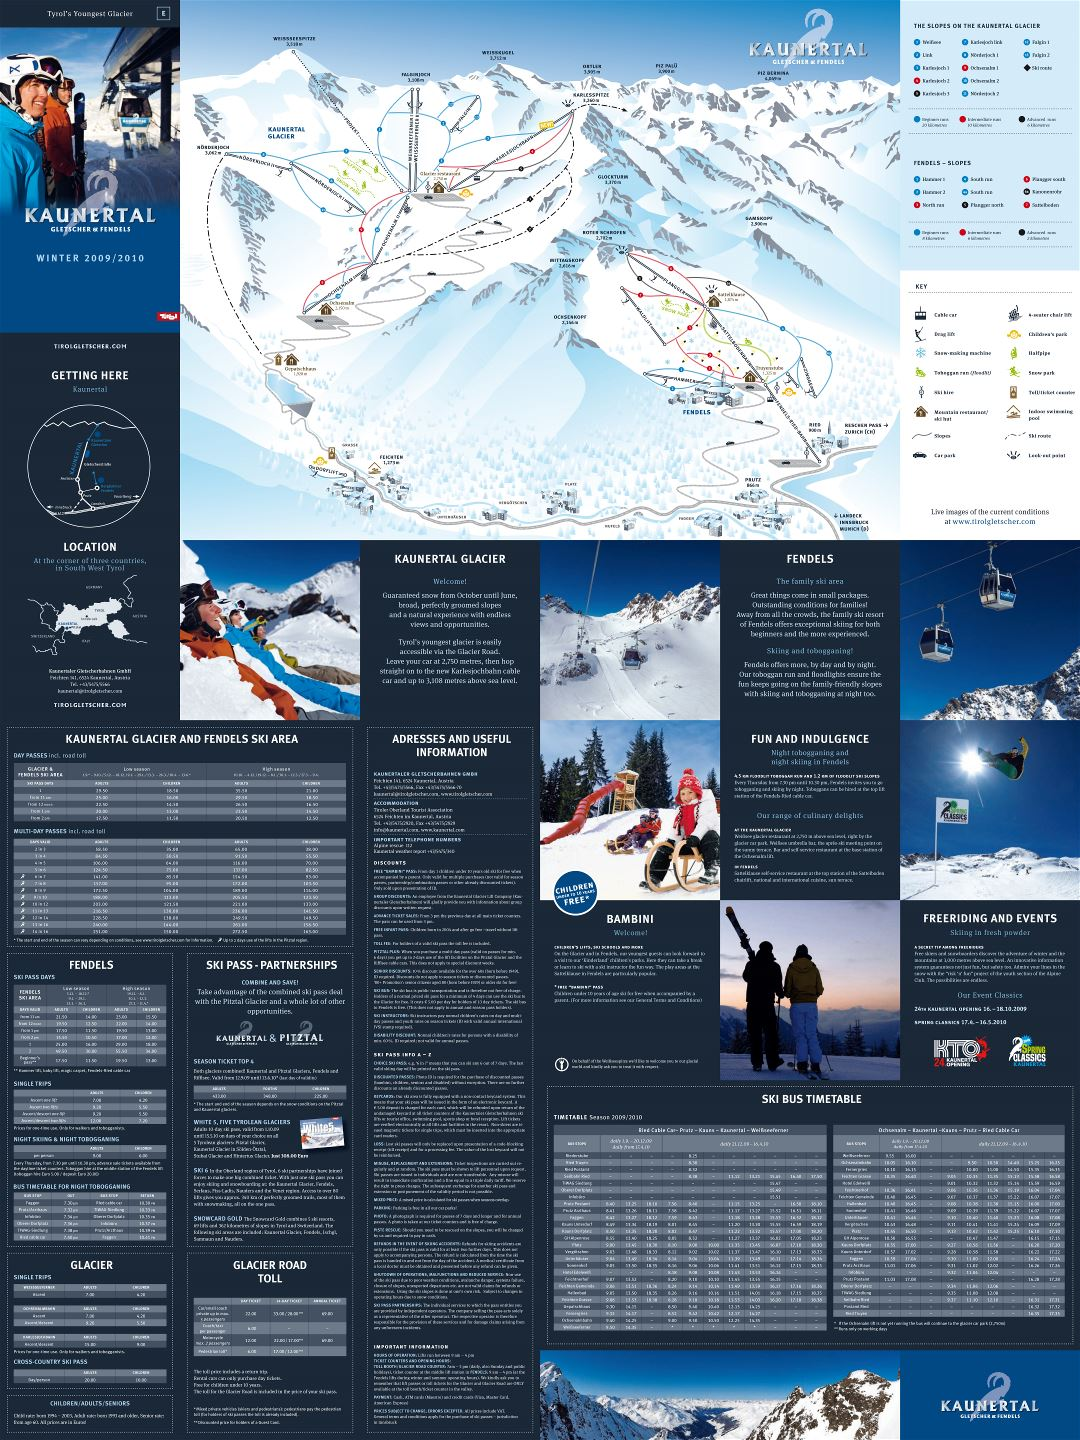 Large scale Gletscher - Fendels, Kaunertal Ski Resort guide - 2009